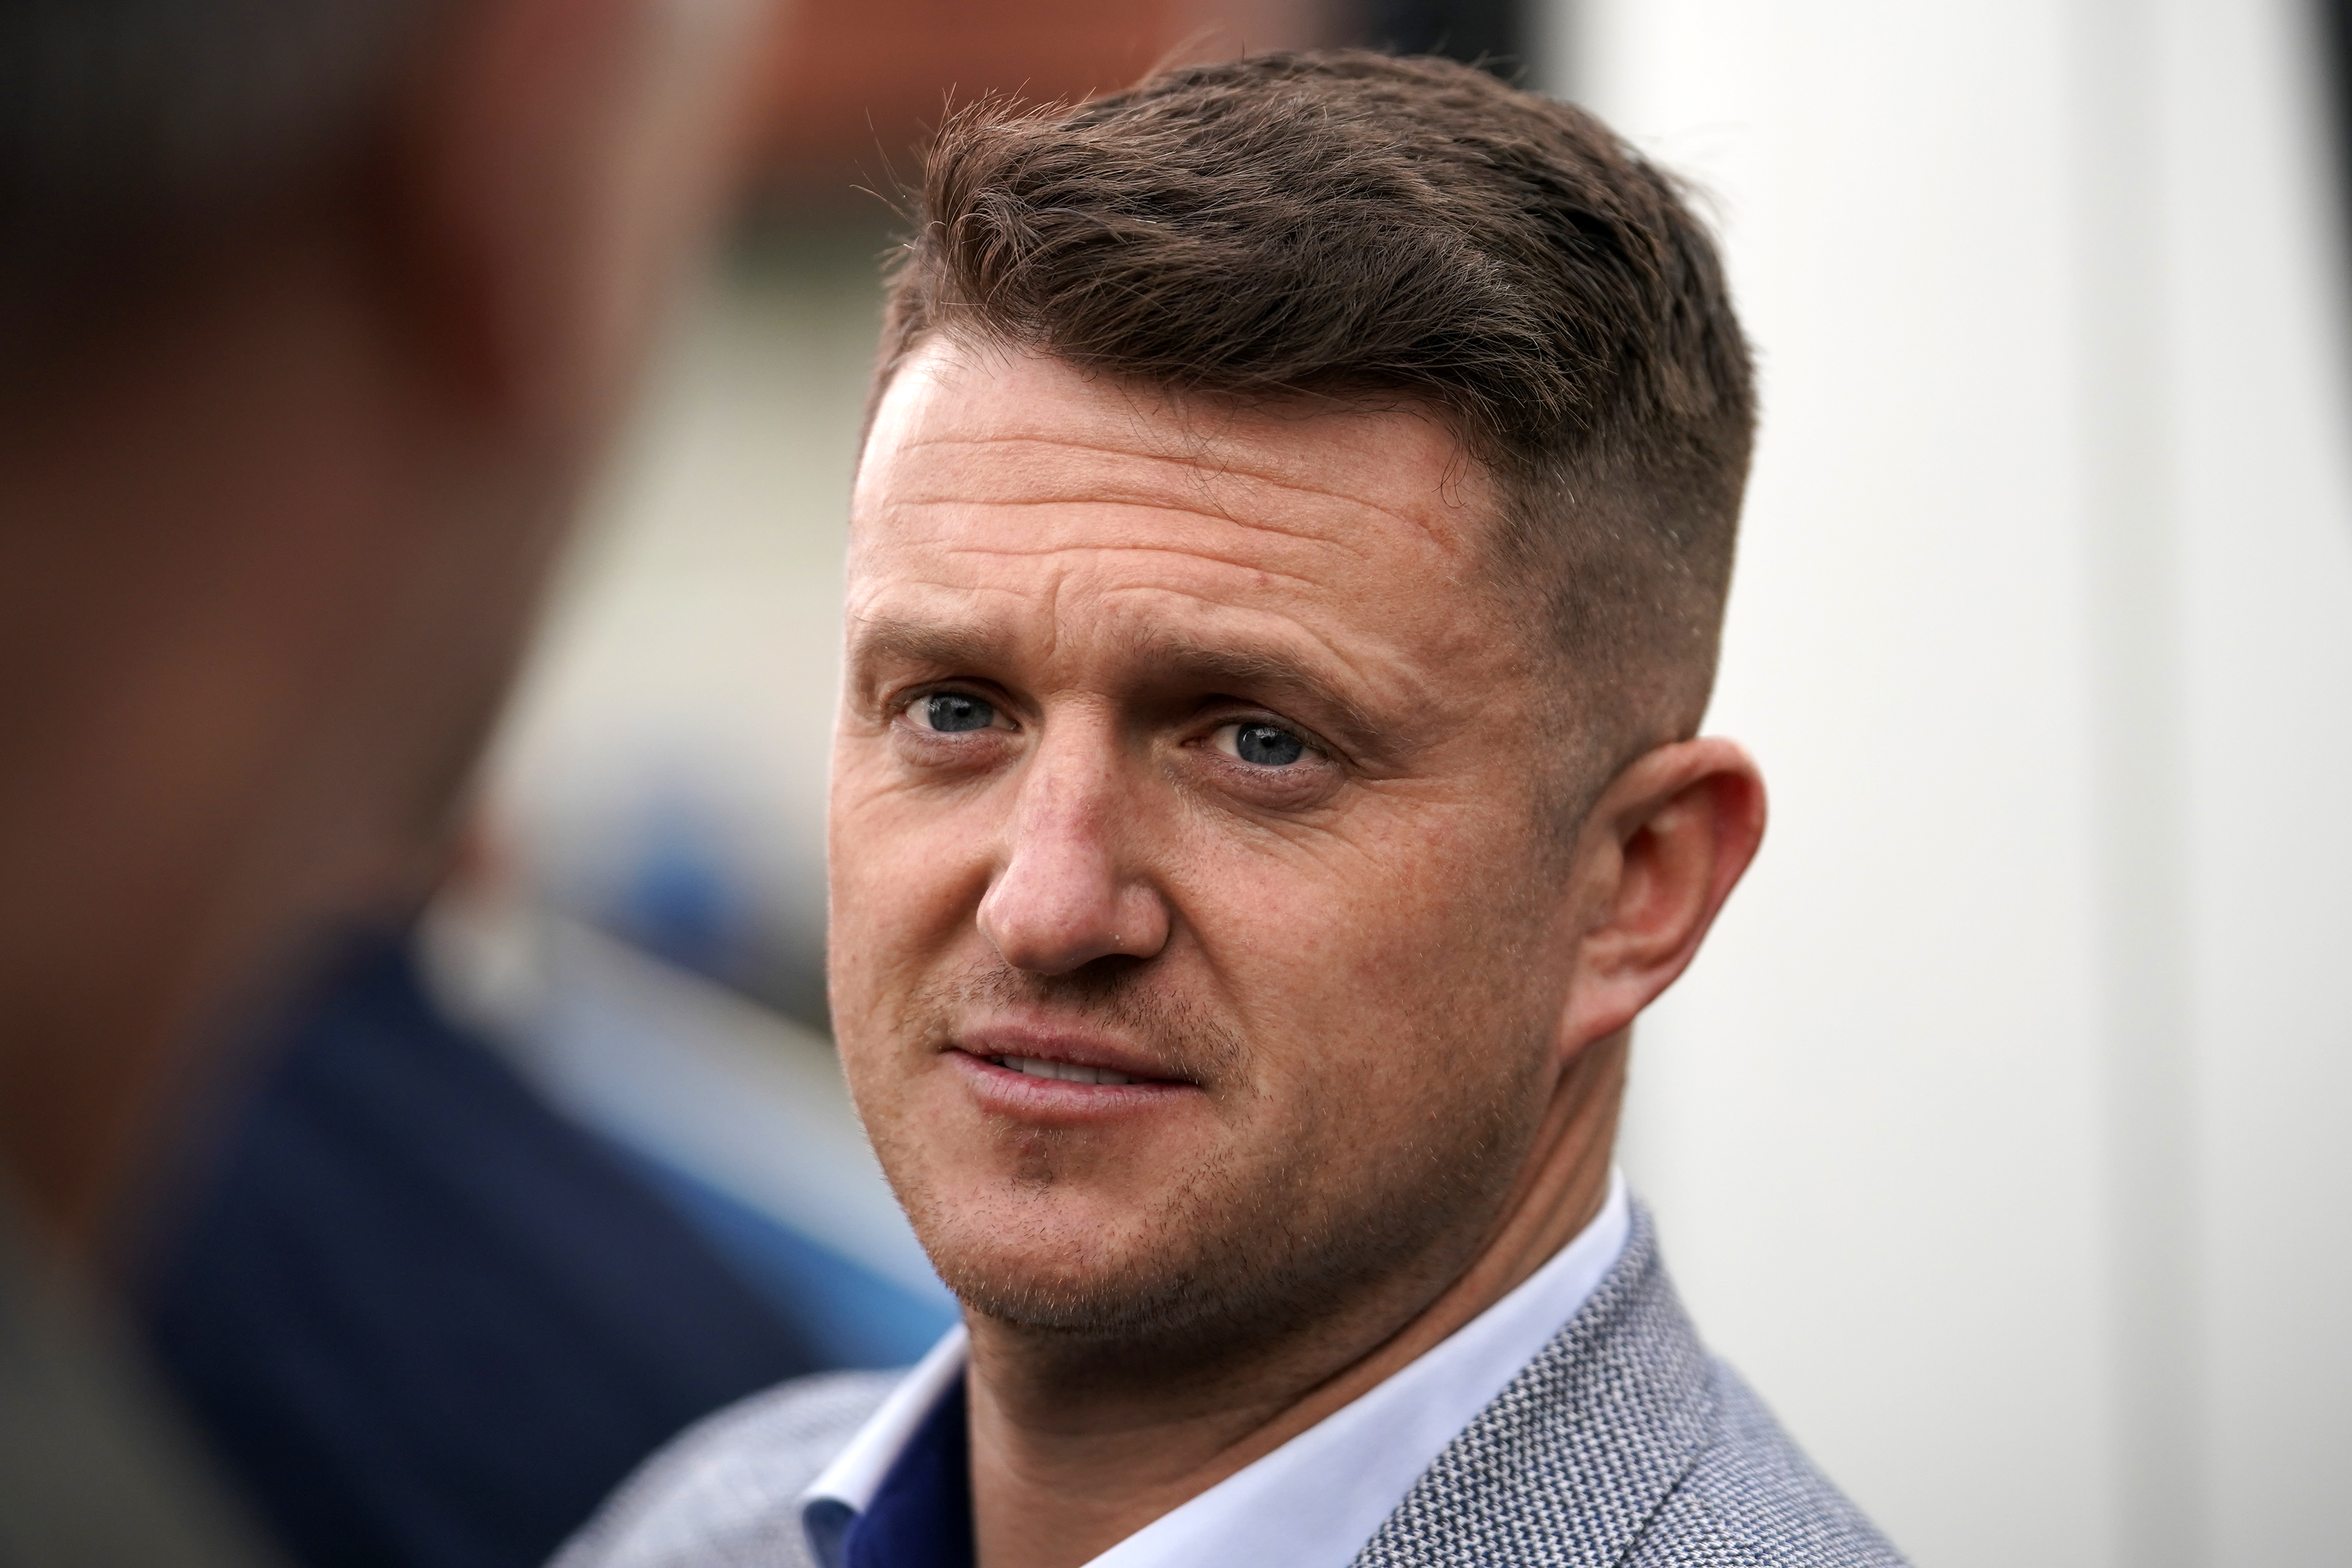 Tommy Robinson (real name Stephen Yaxley-Lennon)